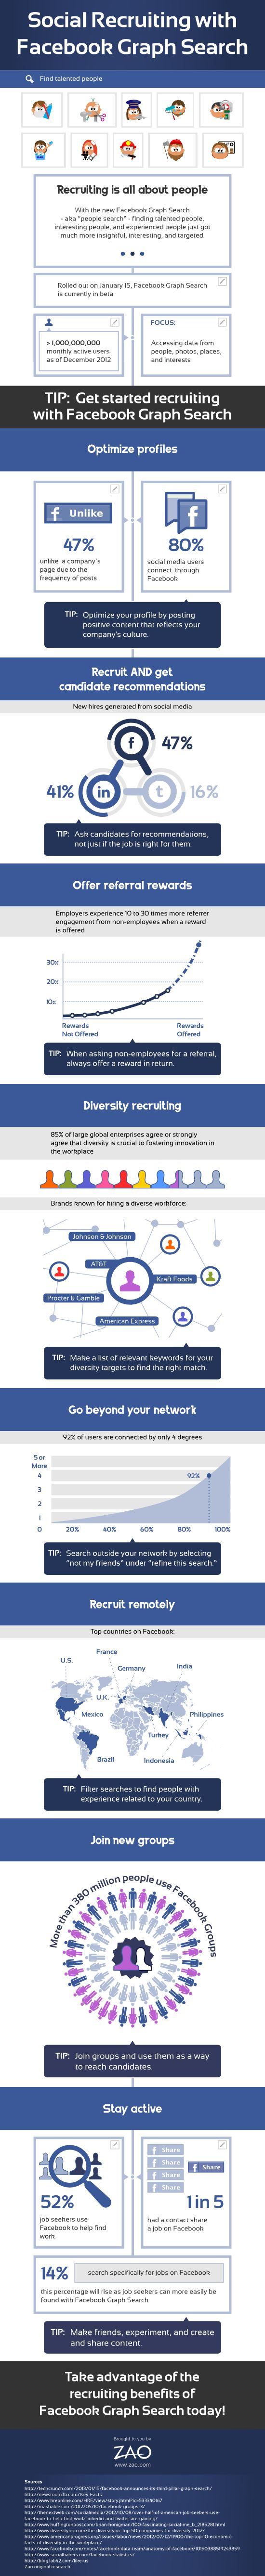 best images about job search advice facebook in order to illustrate some facebook graph search best practices this infographic compiled by